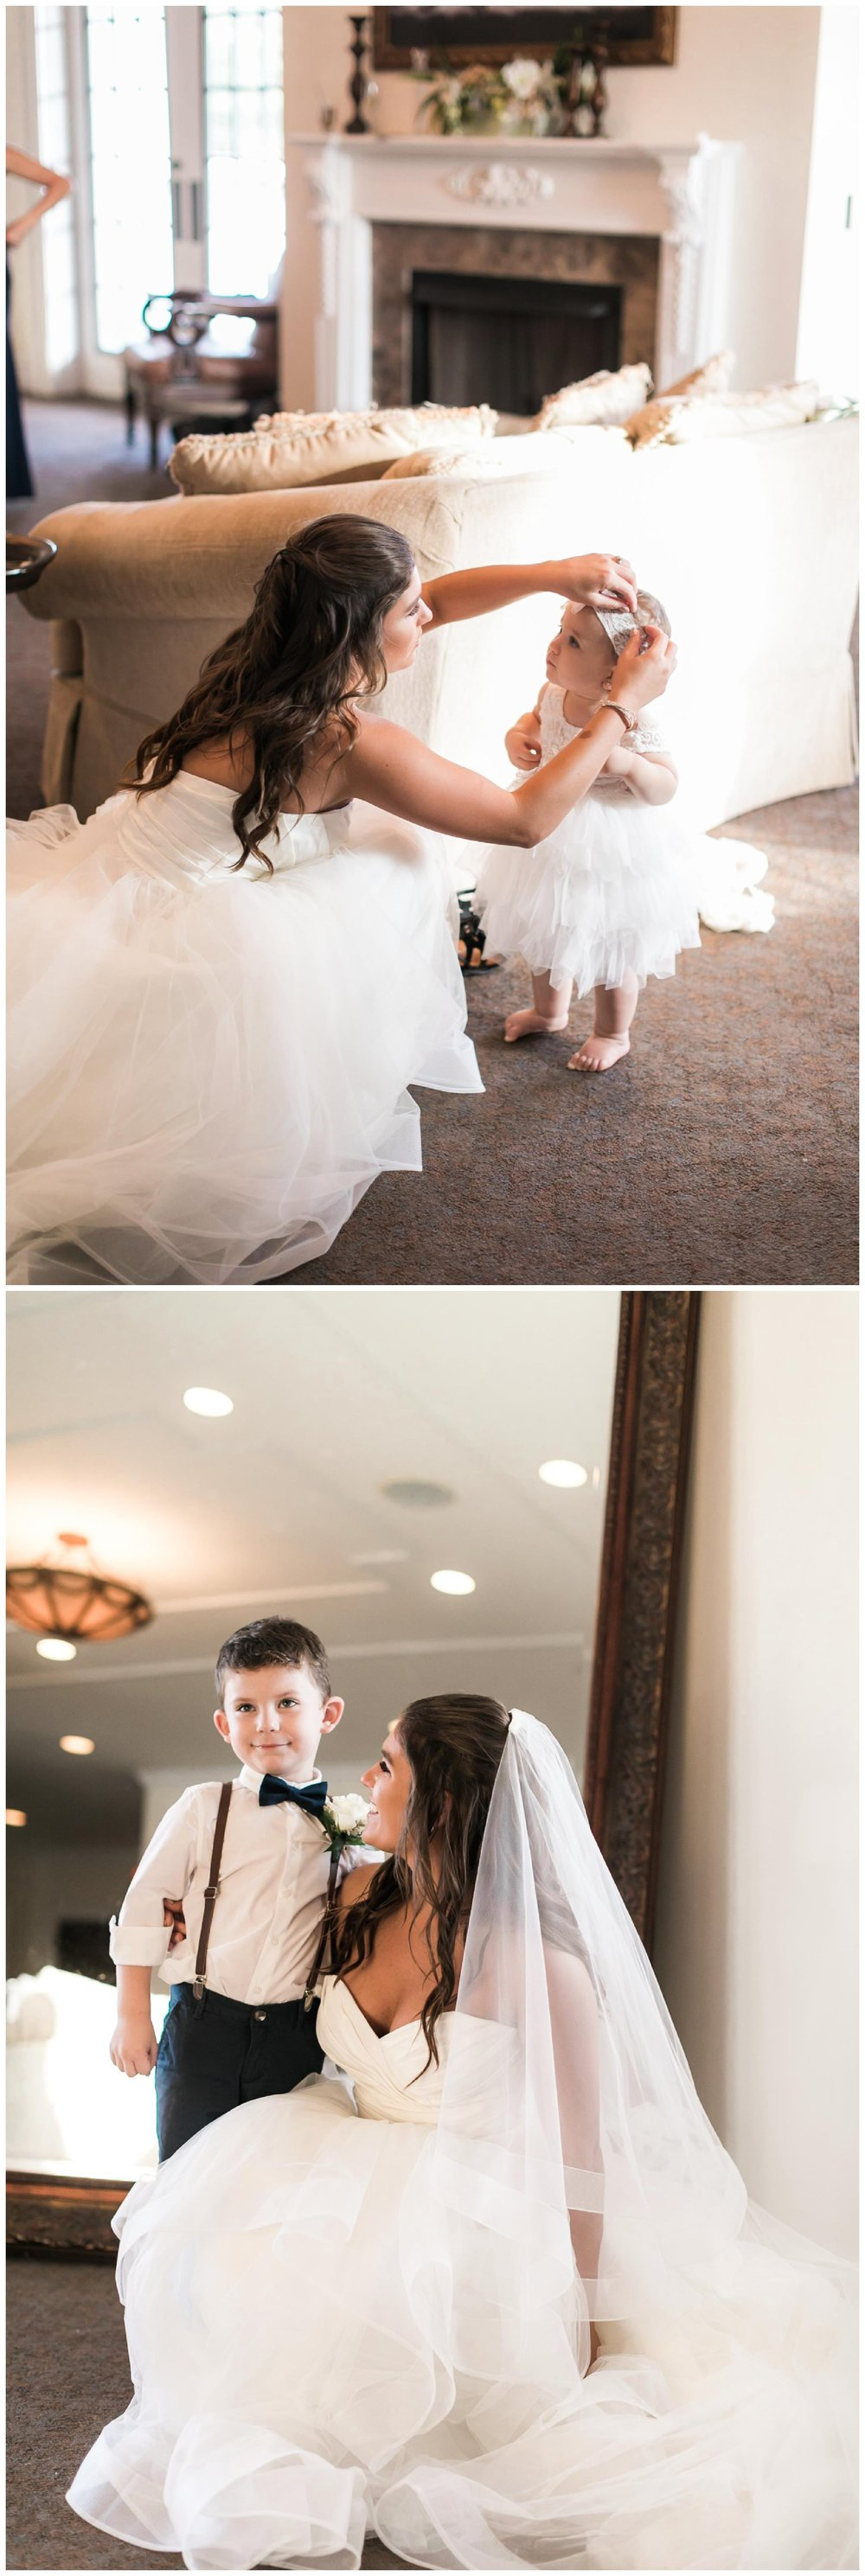 JenandEd_NewJerseyWedding_CarriageHouse_Galloway_NJ__SouthJersey_Wedding_Photographer_MagdalenaStudios_0260.jpg